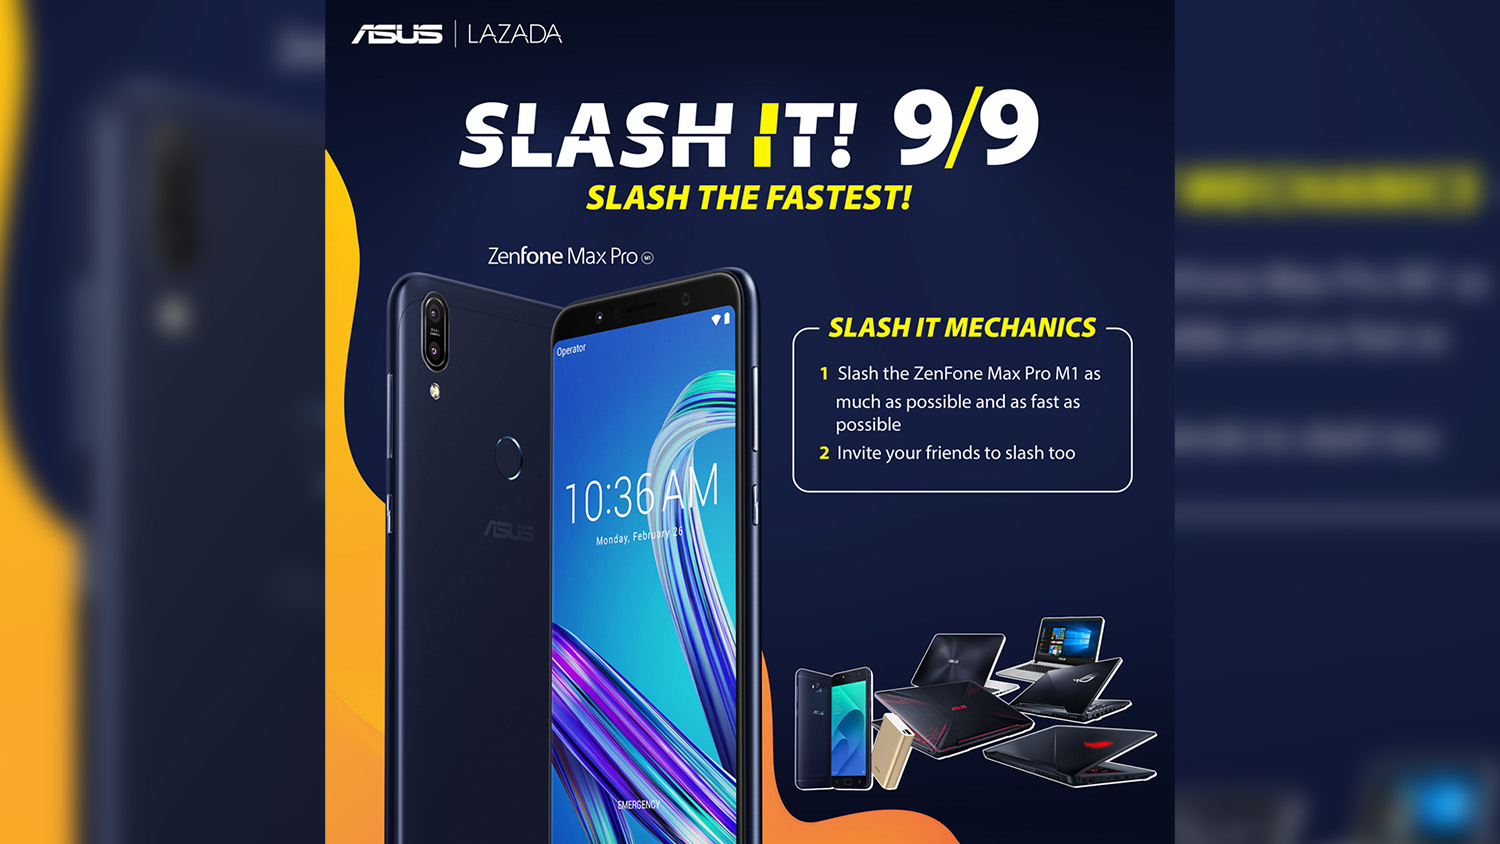 Celebrate Discounts From ASUS At Lazada 9.9 Flash Sale